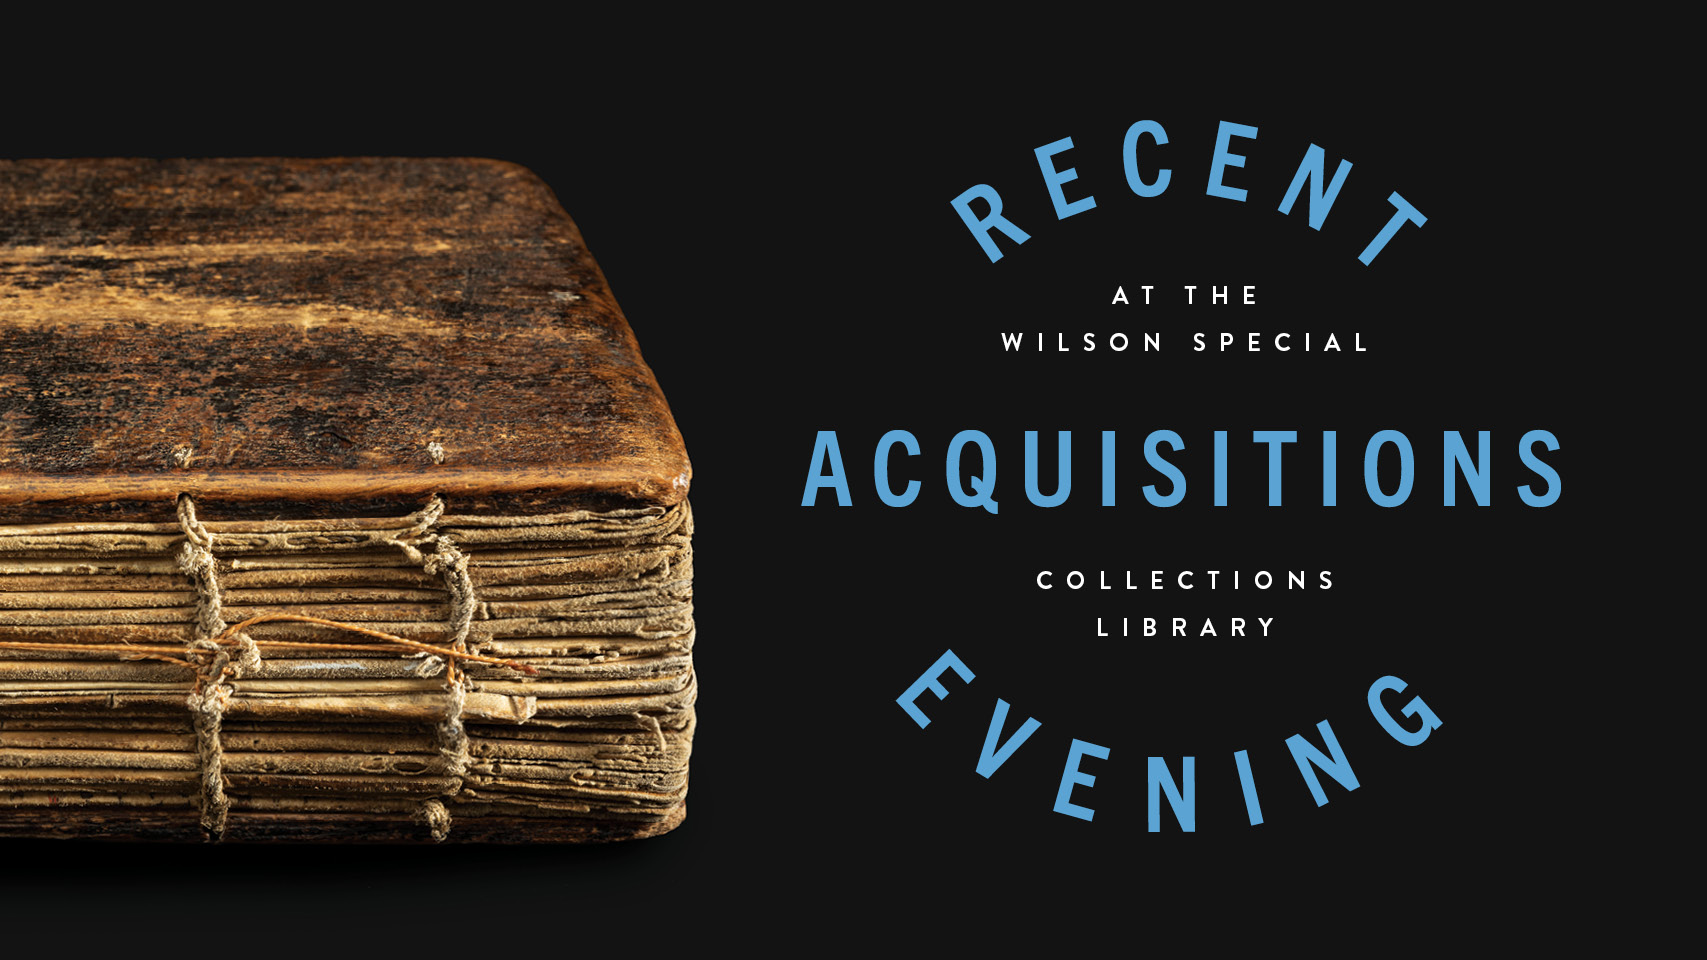 Recent Acquisitions Evening at Wilson Library April 4